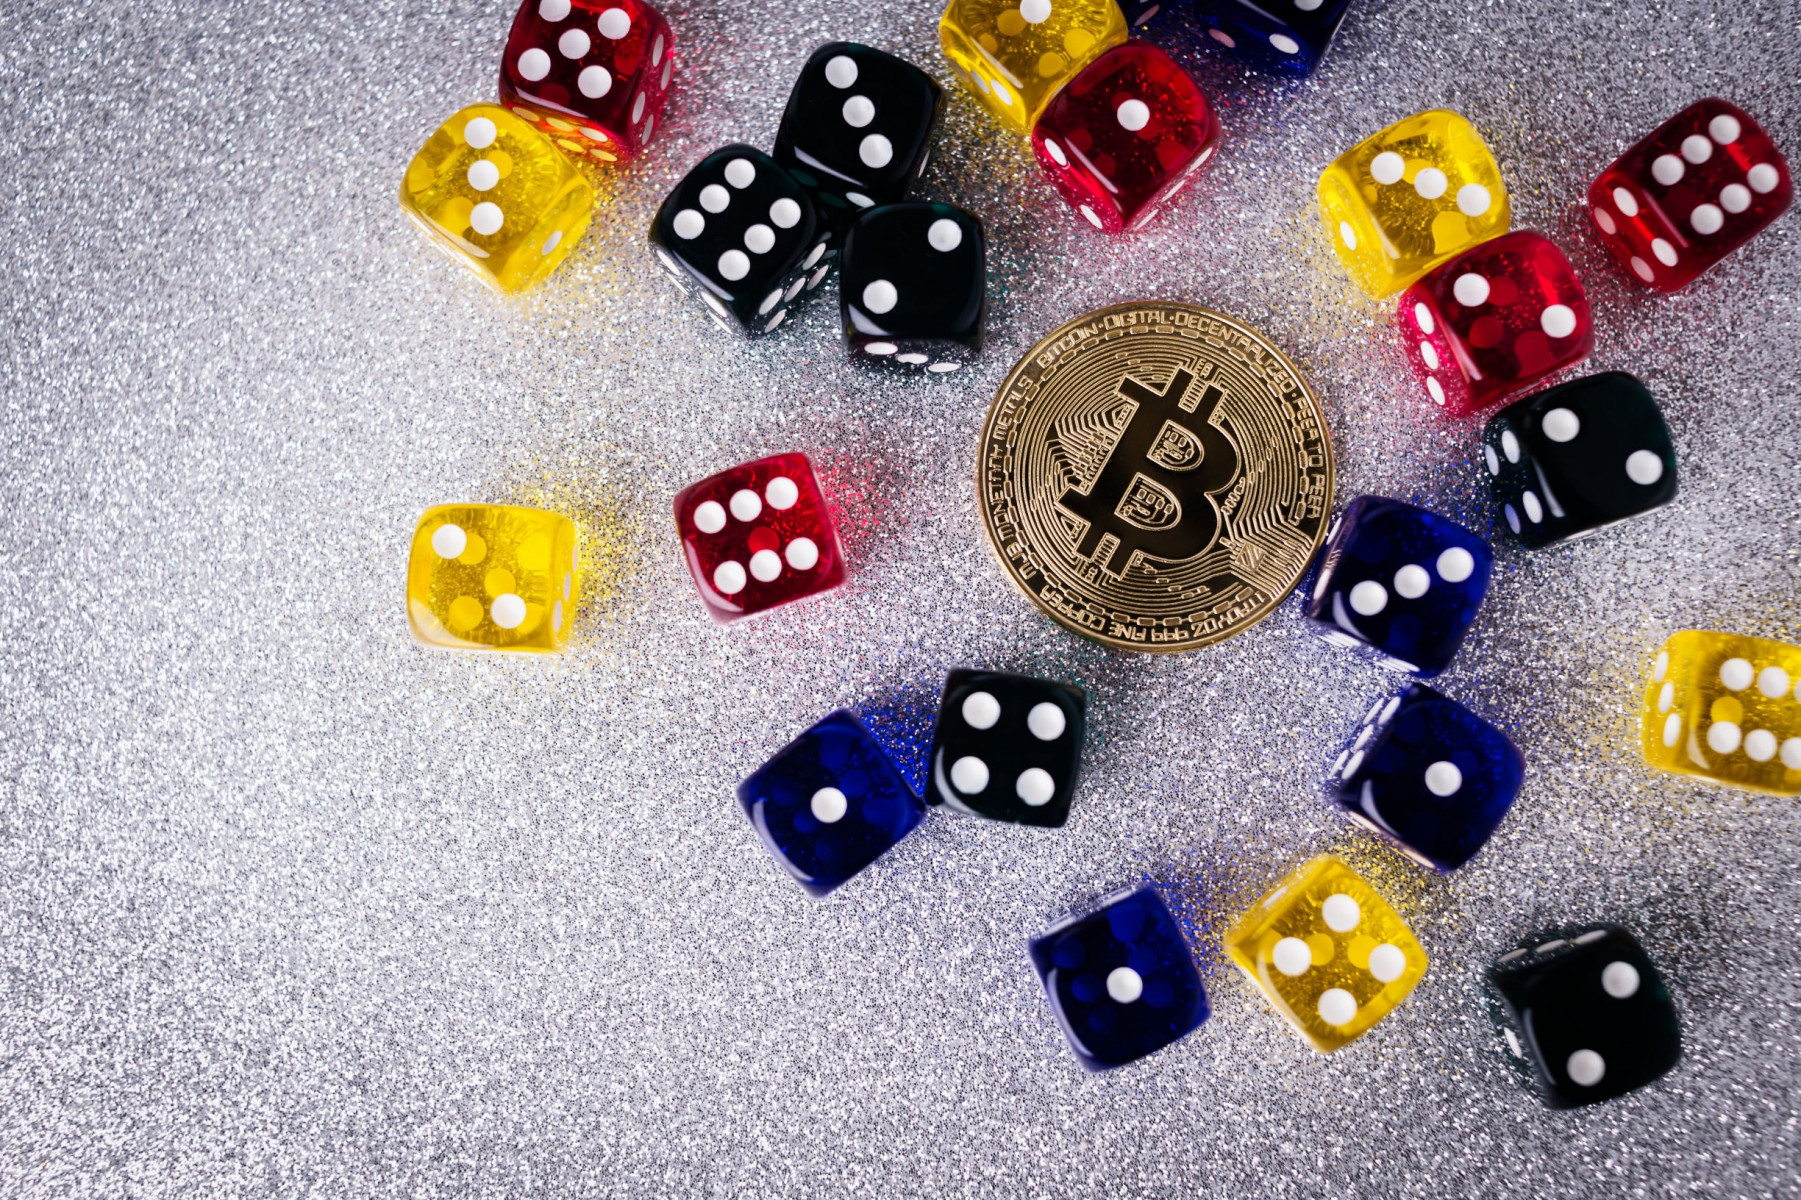 Blockchain: The next step in esports and gambling